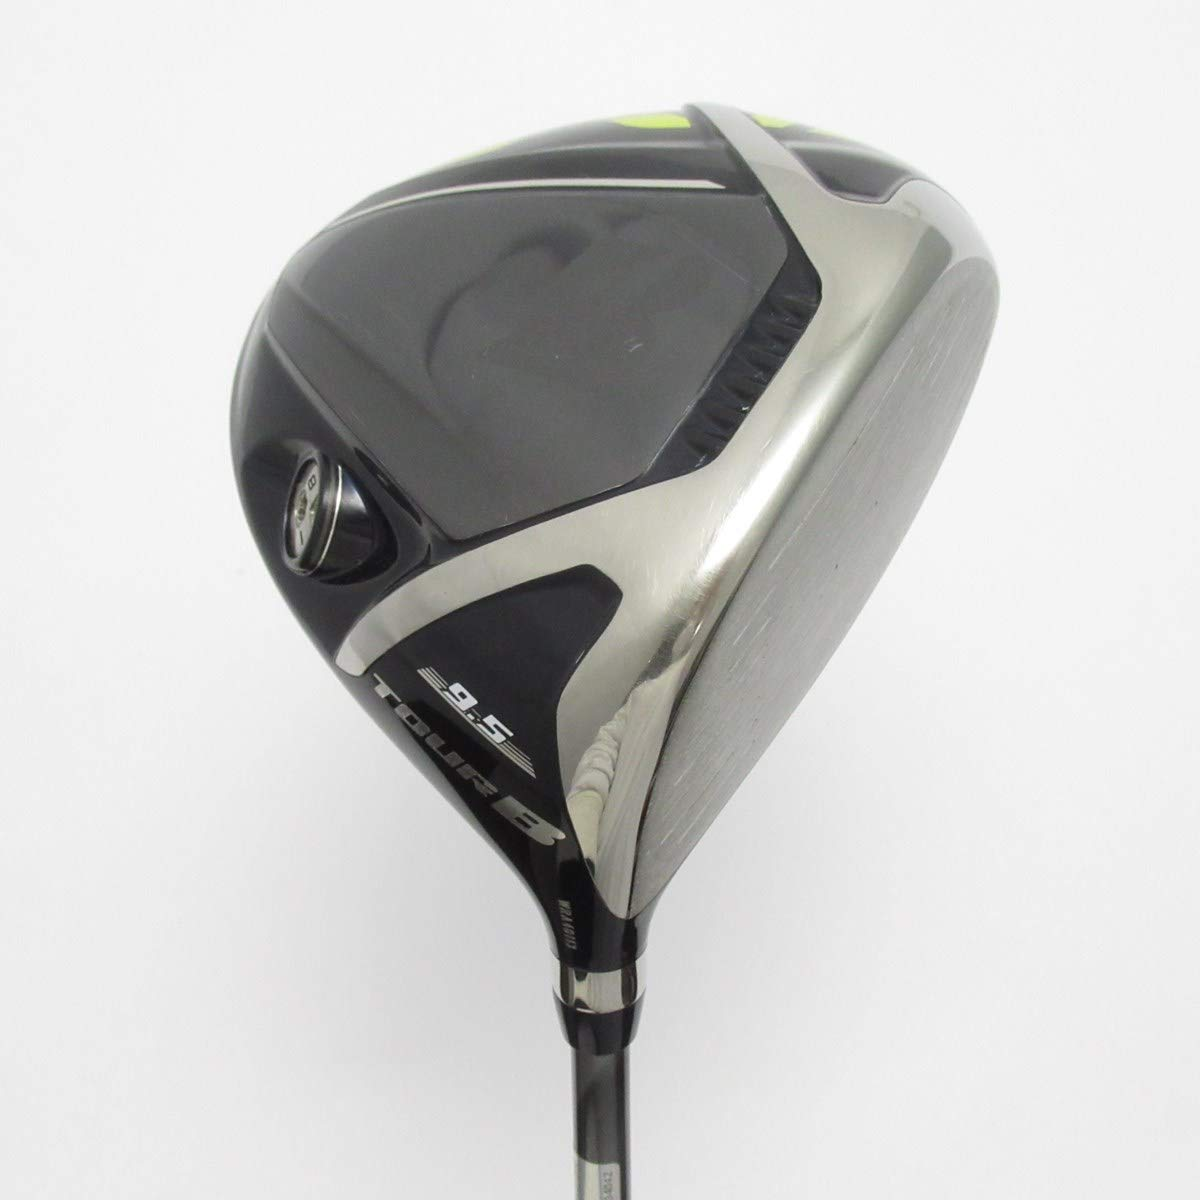 【中古】ブリヂストン TOUR B ツアーB JGR ドライバー Speeder 569 EVOLUTION IV B07NTRT1FW  S